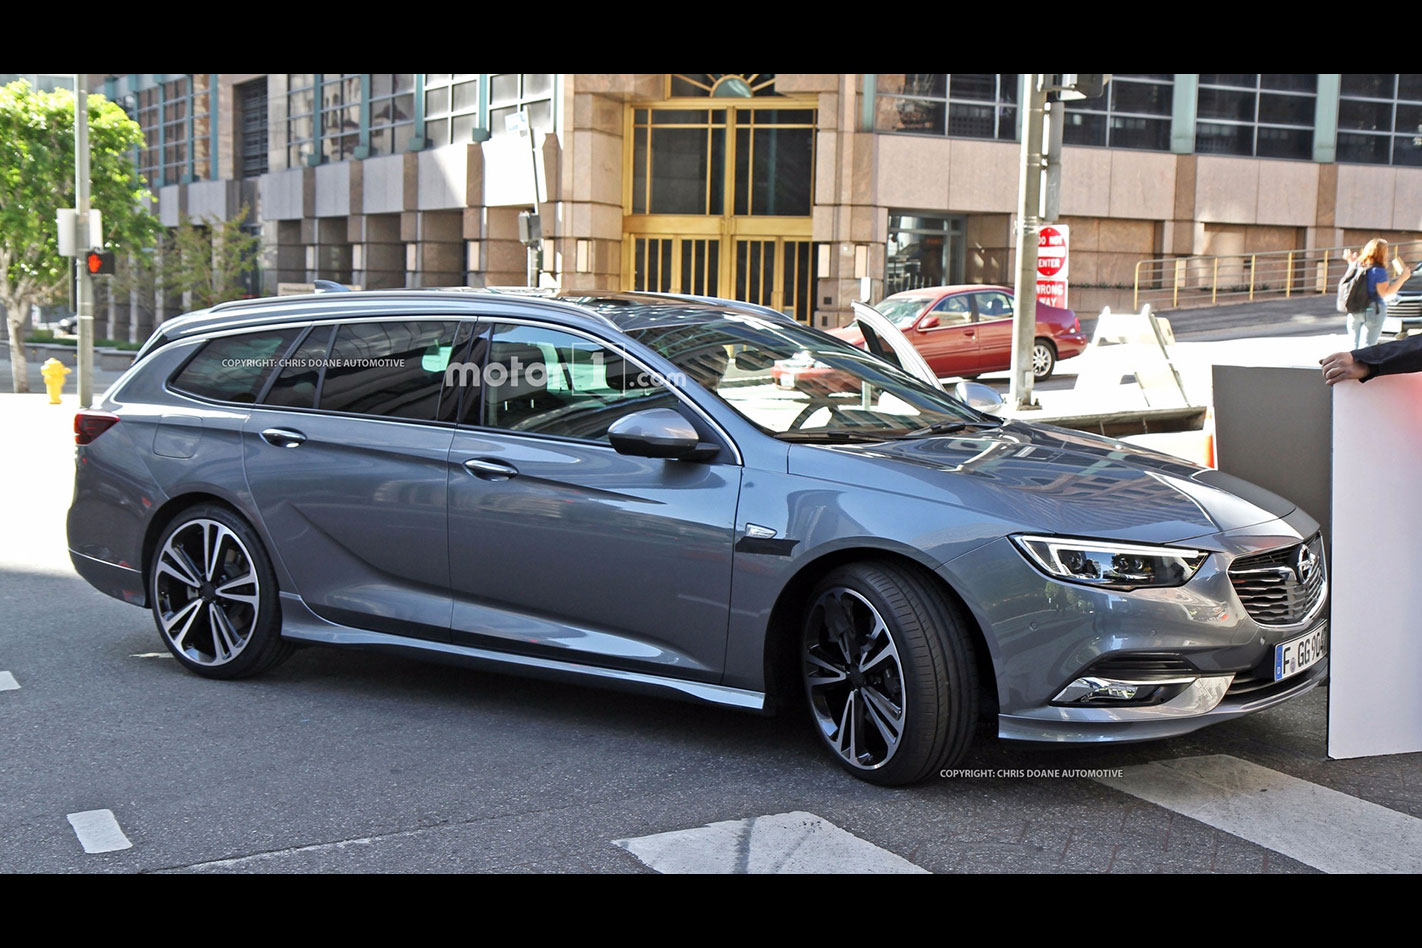 2018 Holden Commodore spied wagon